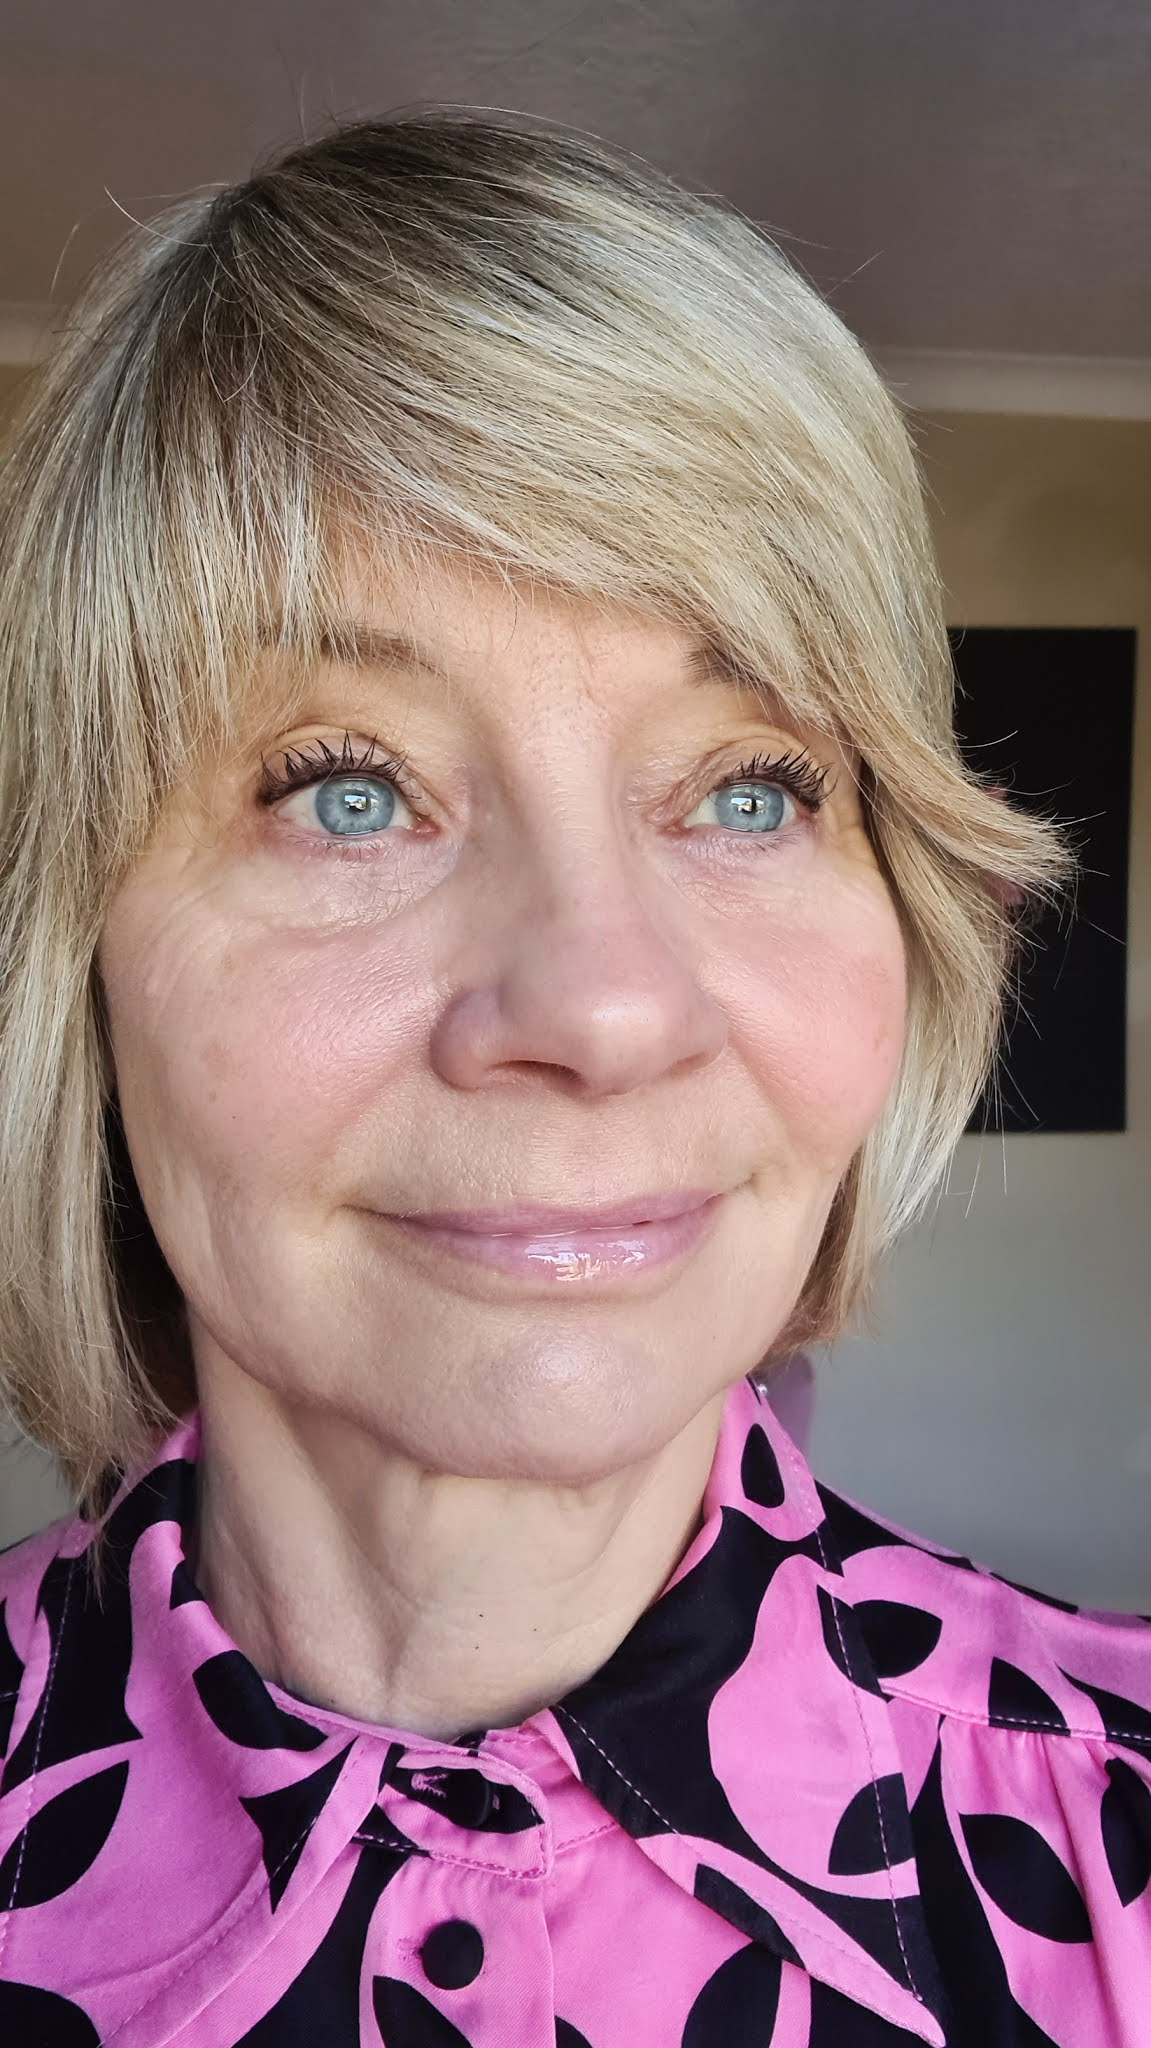 Over 50s blogger Gail Hanlon from Is This Mutton tries out the My John Lewis x Hannah Martin beauty box - and likes it